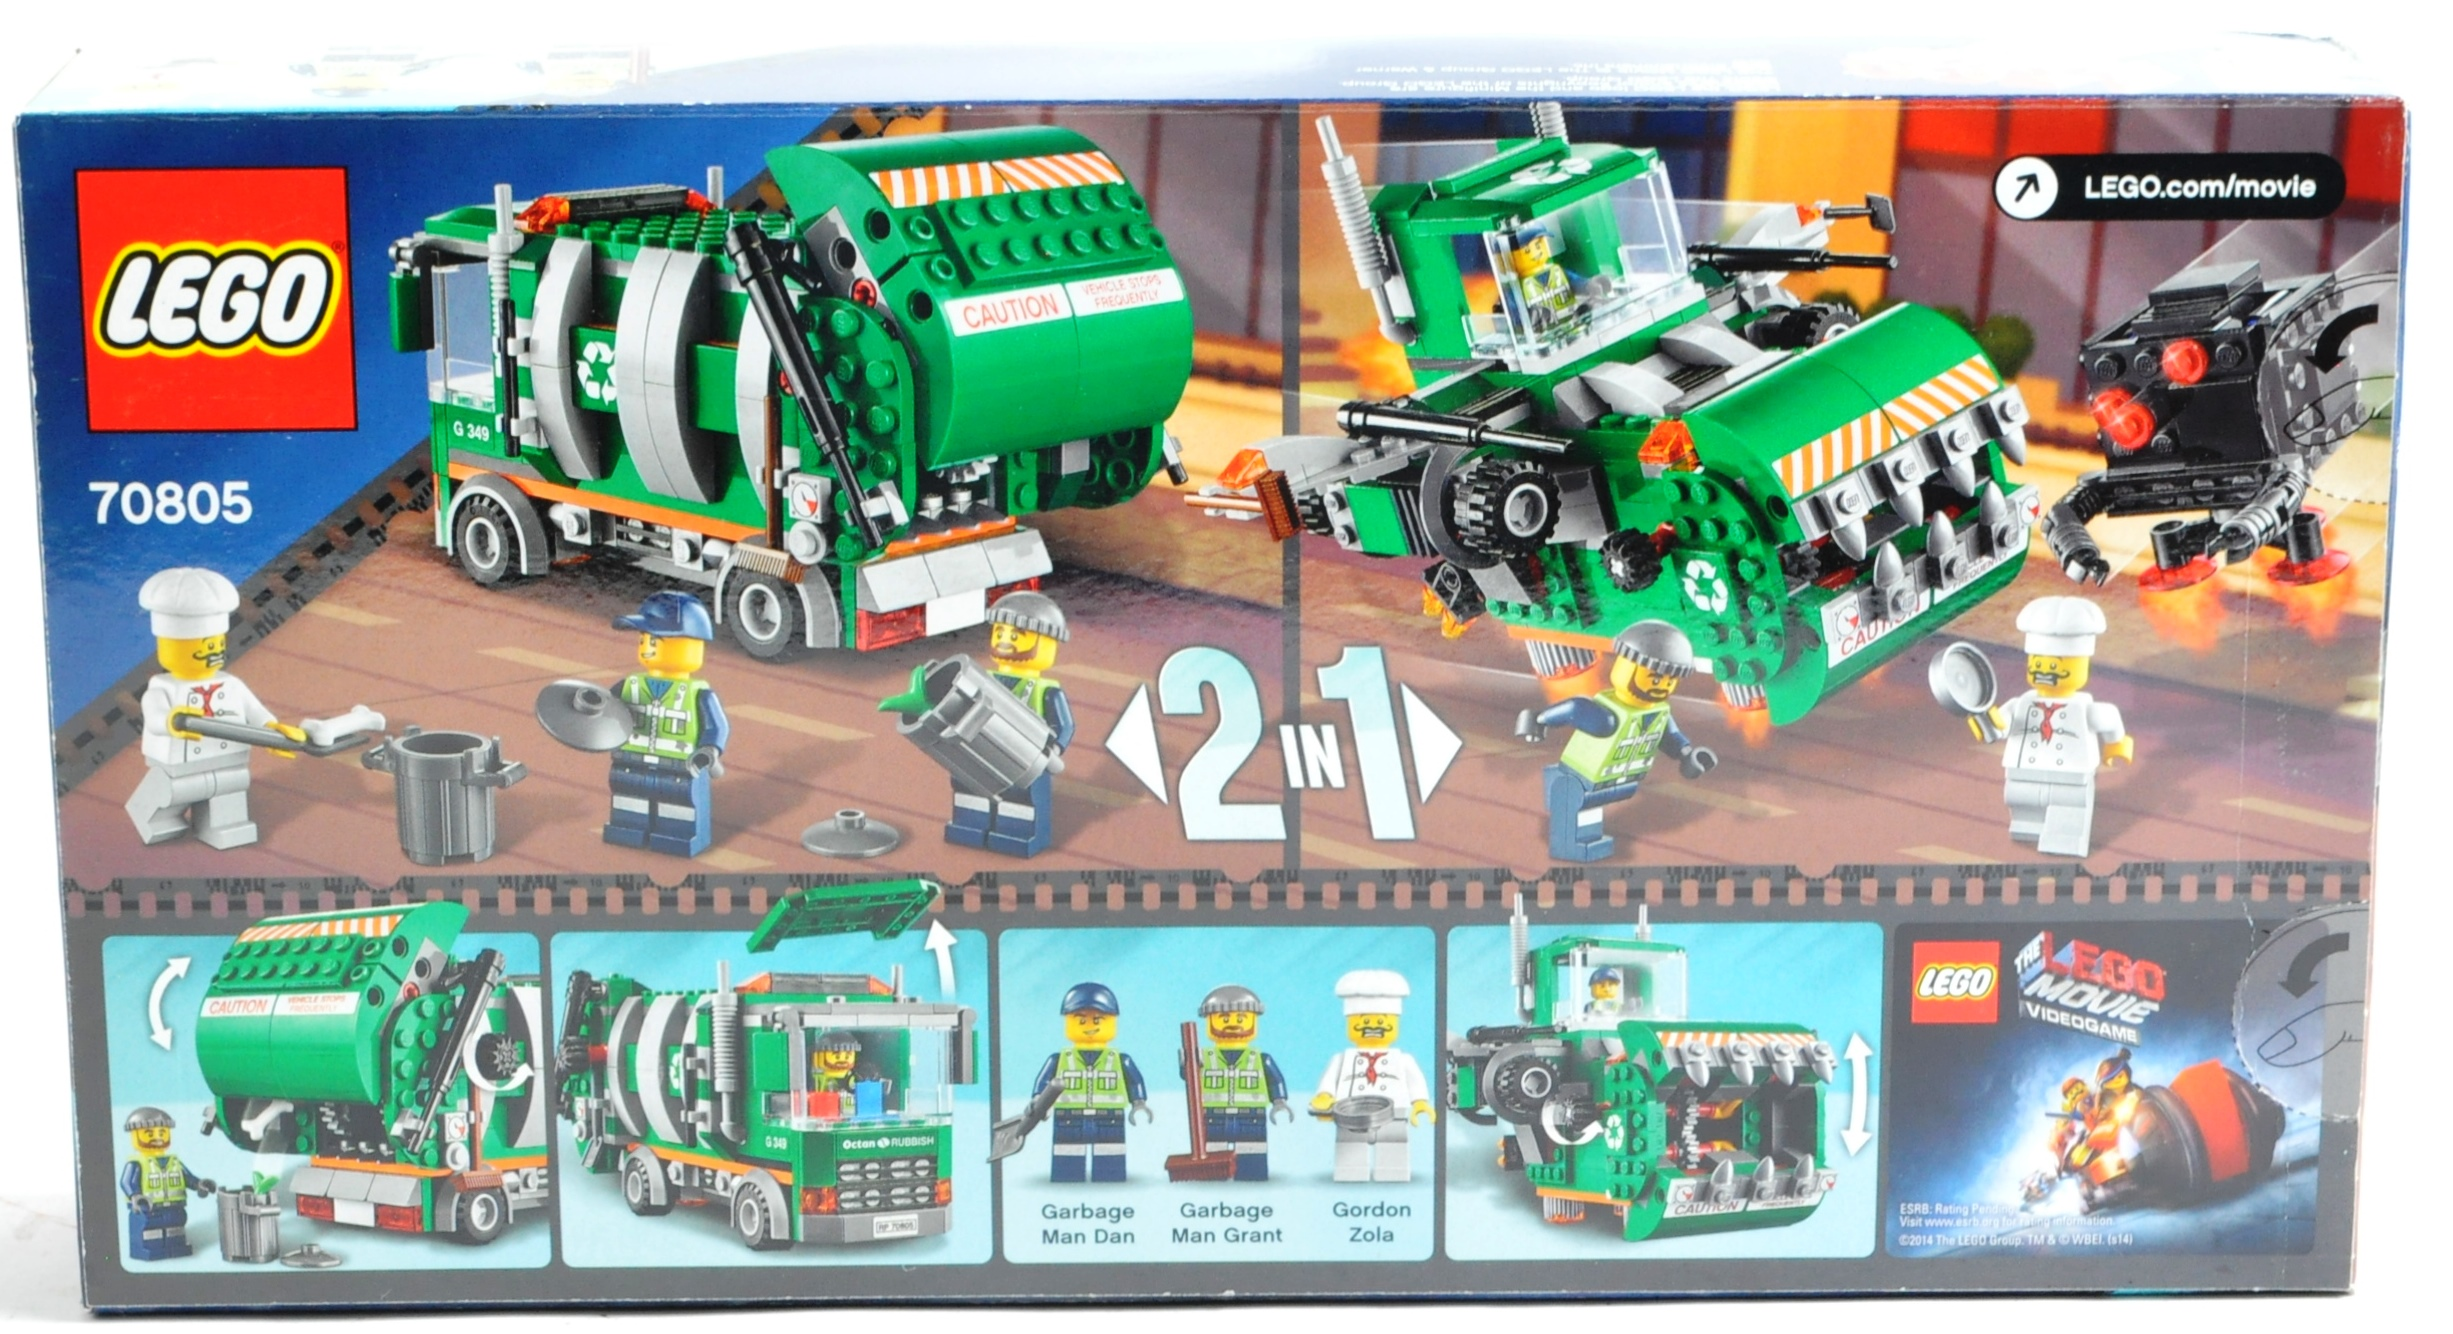 LEGO SETS - THE LEGO MOVIE - COLLECTION OF X7 LEGO MOVIE SETS - Image 14 of 17